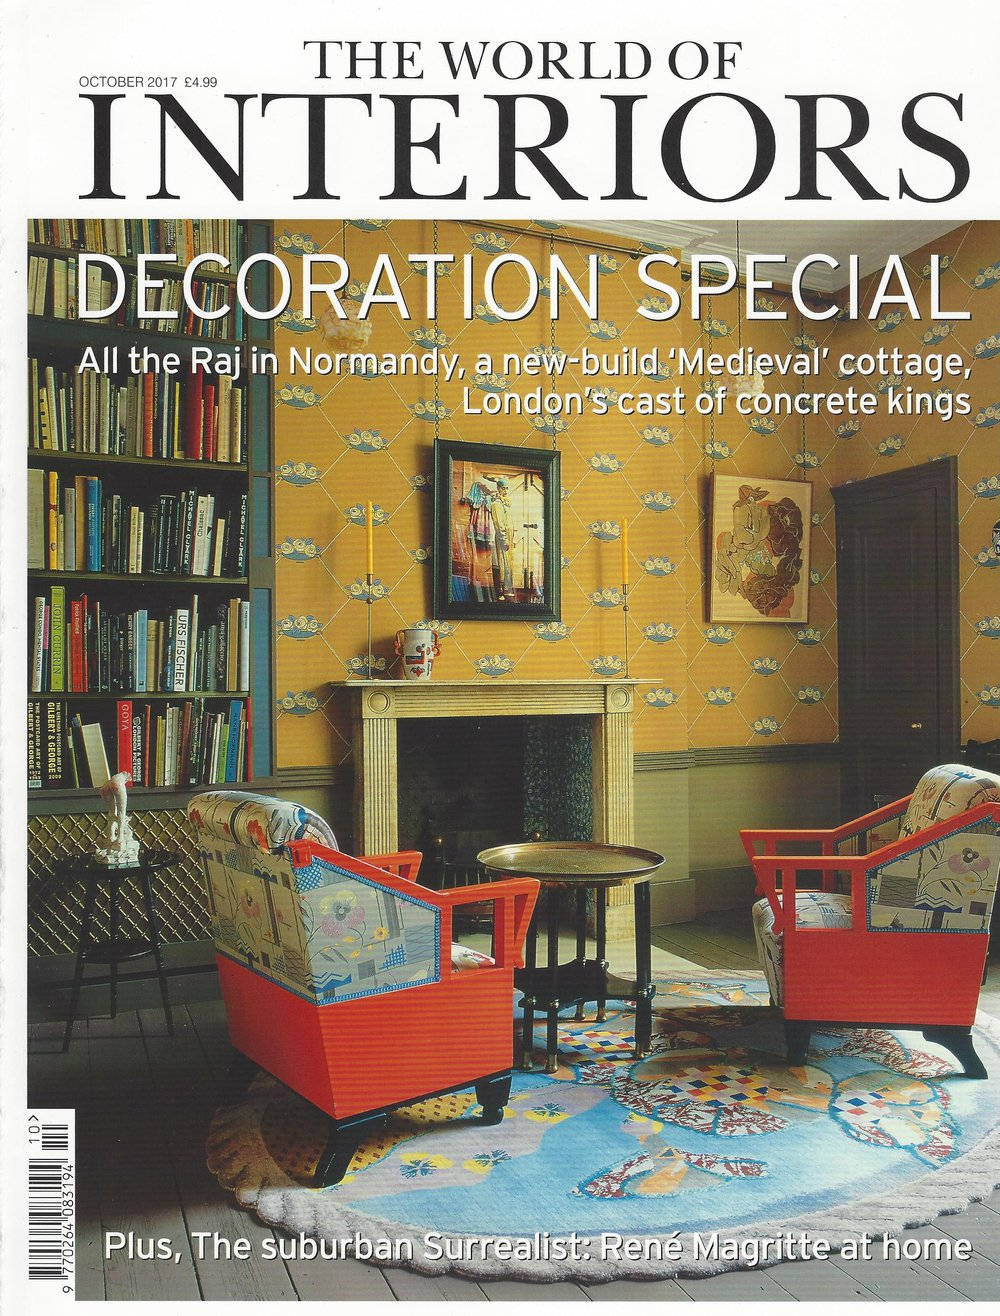 World of Interiors - October issue - cover.jpg